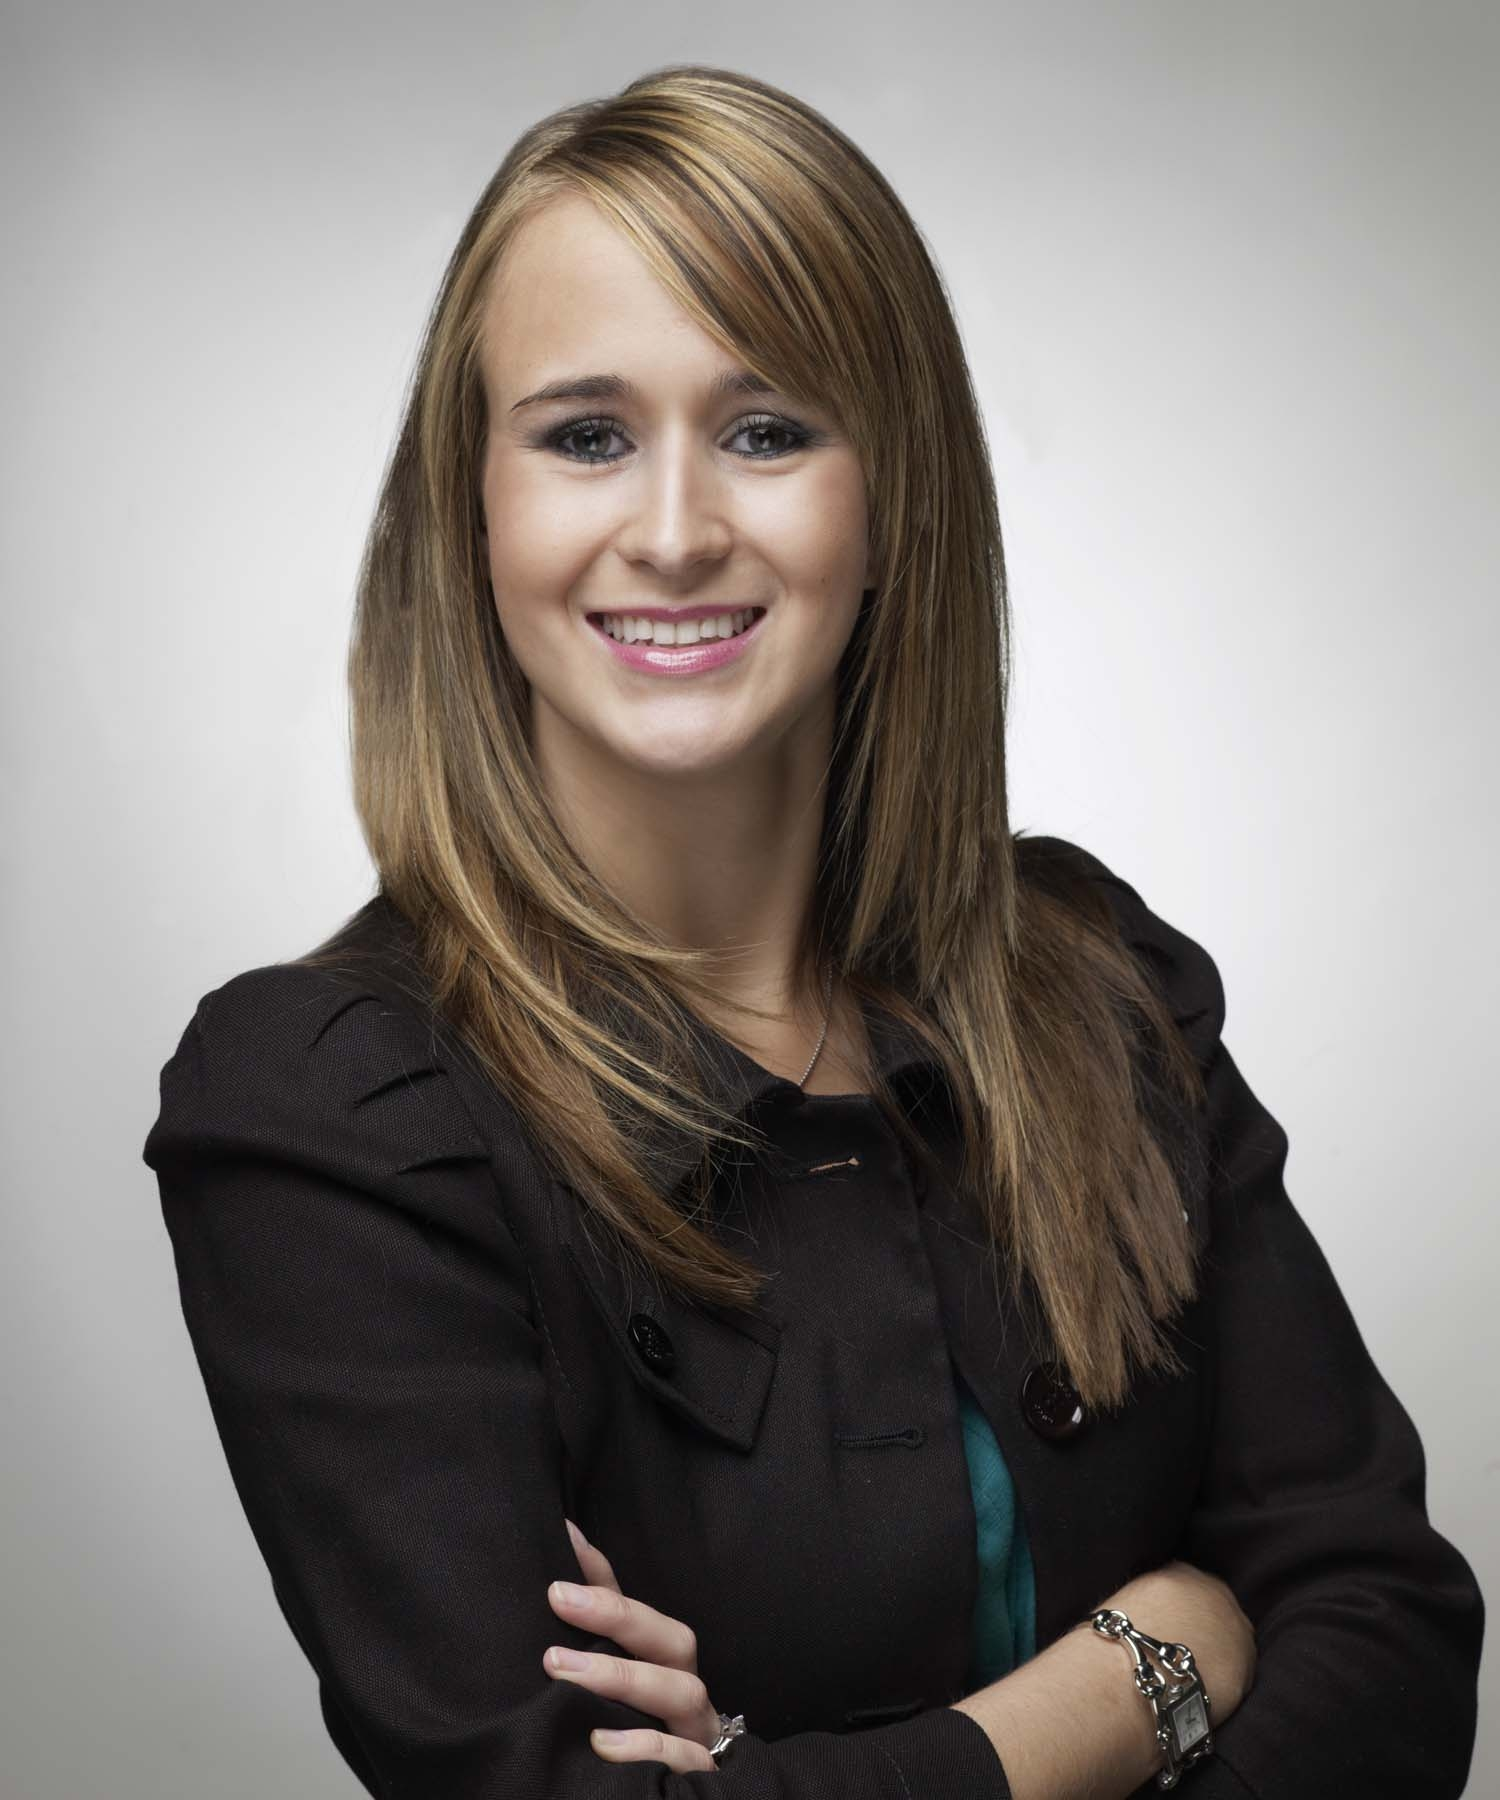 photo of Krisleigh Hoermann, Social Media Strategist, American Heart Association